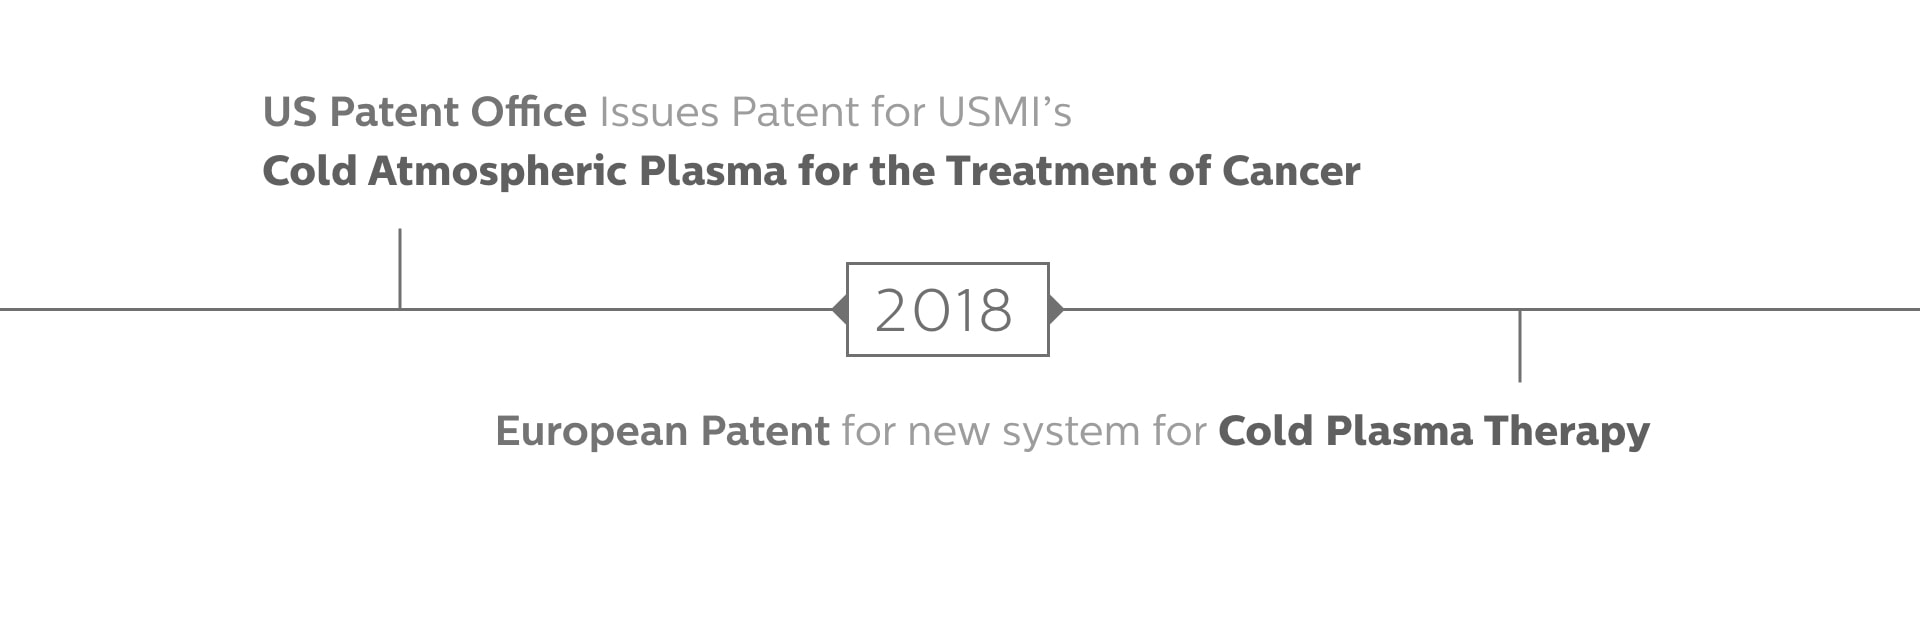 US Patent Office (USPO) to grant patent to USMI for using Cold Plasma for the Selective Ablation of Cancer Cells